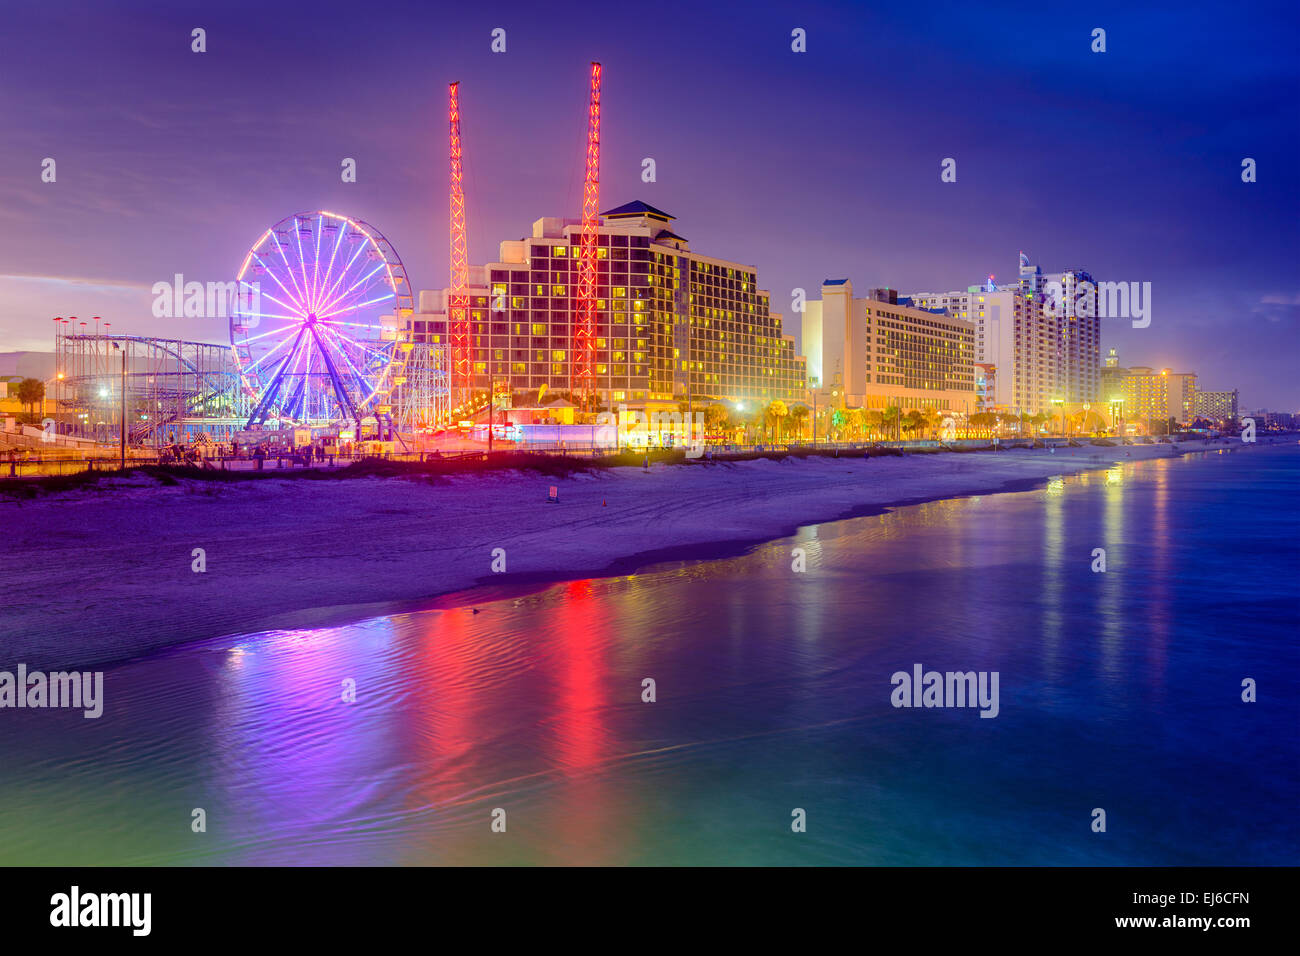 Daytona Beach, Florida, USA beachfront resorts skyline. - Stock Image